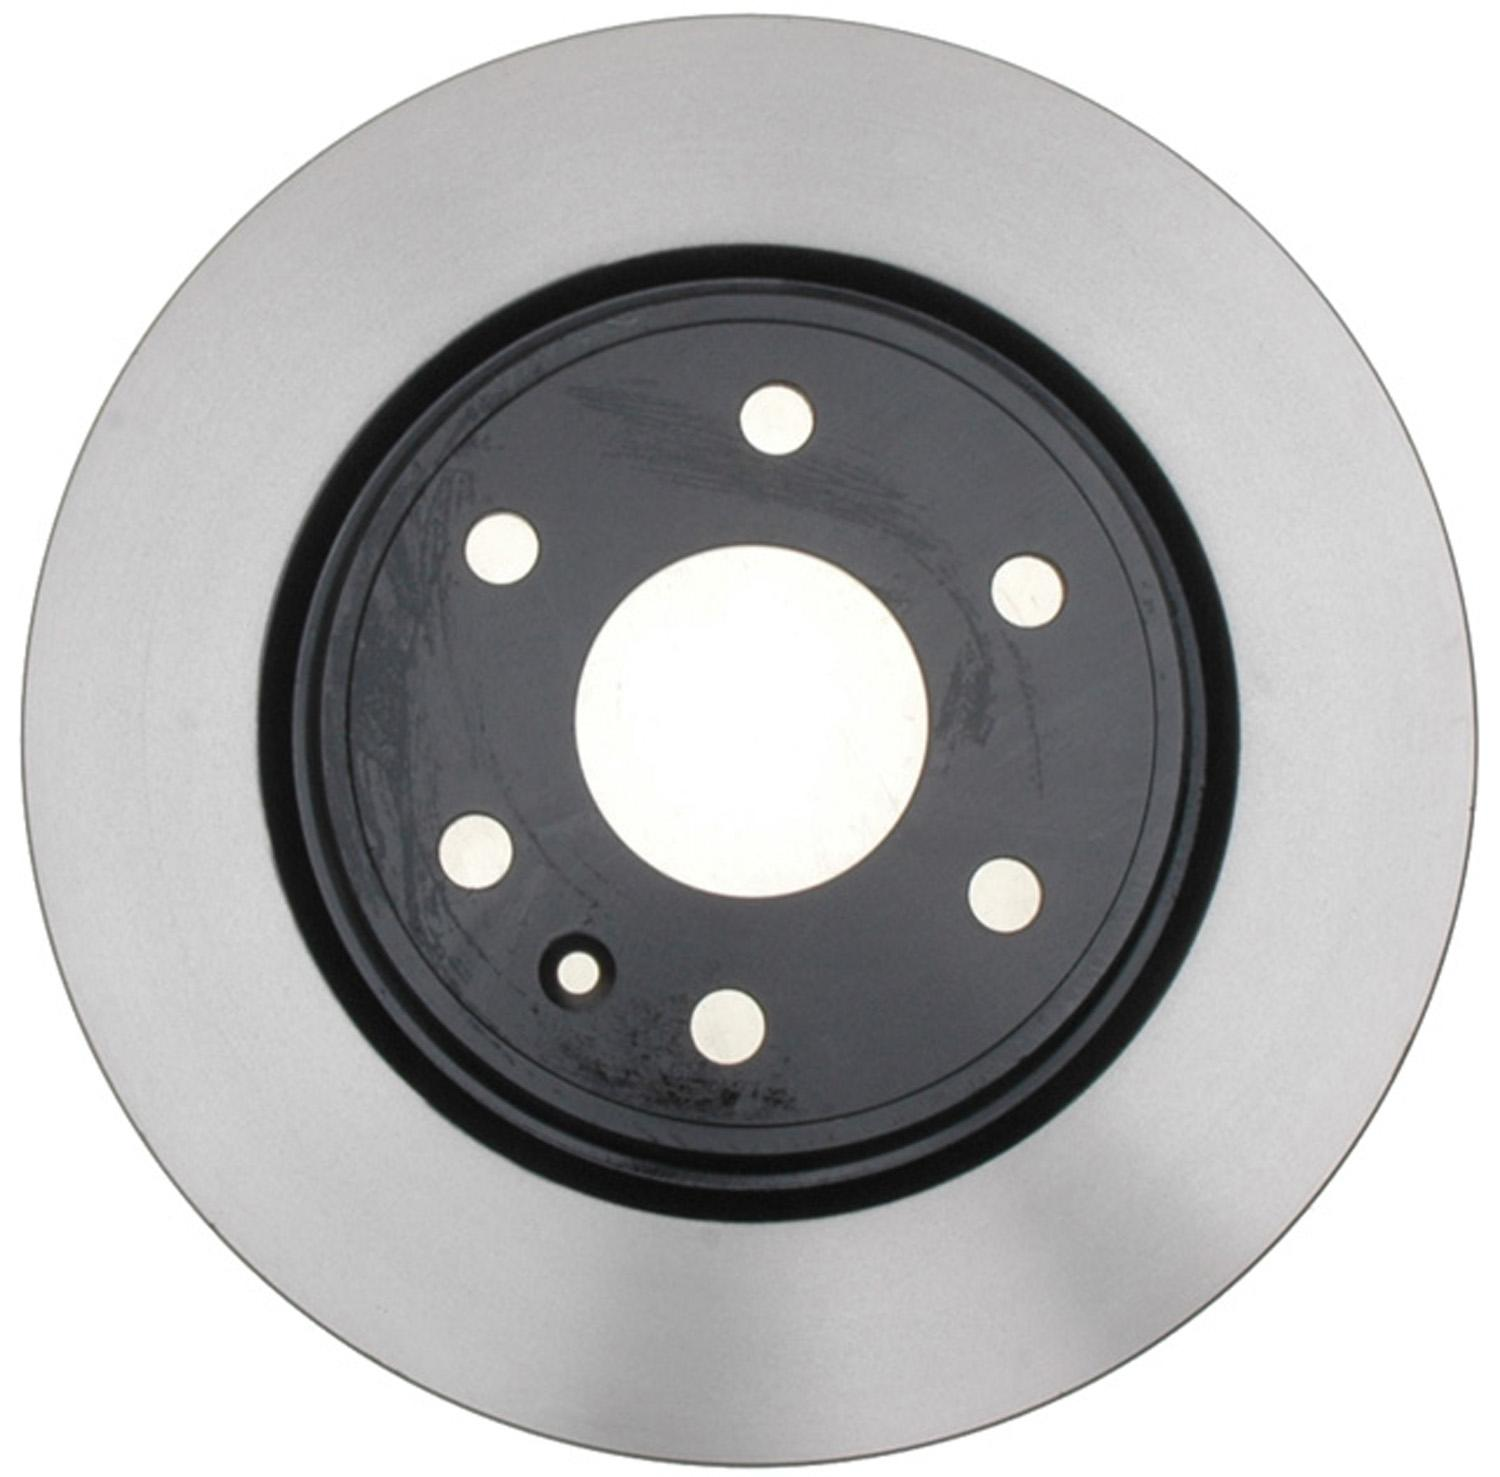 ACDELCO PROFESSIONAL BRAKES - Disc Brake Rotor (Front) - ADU 18A2497